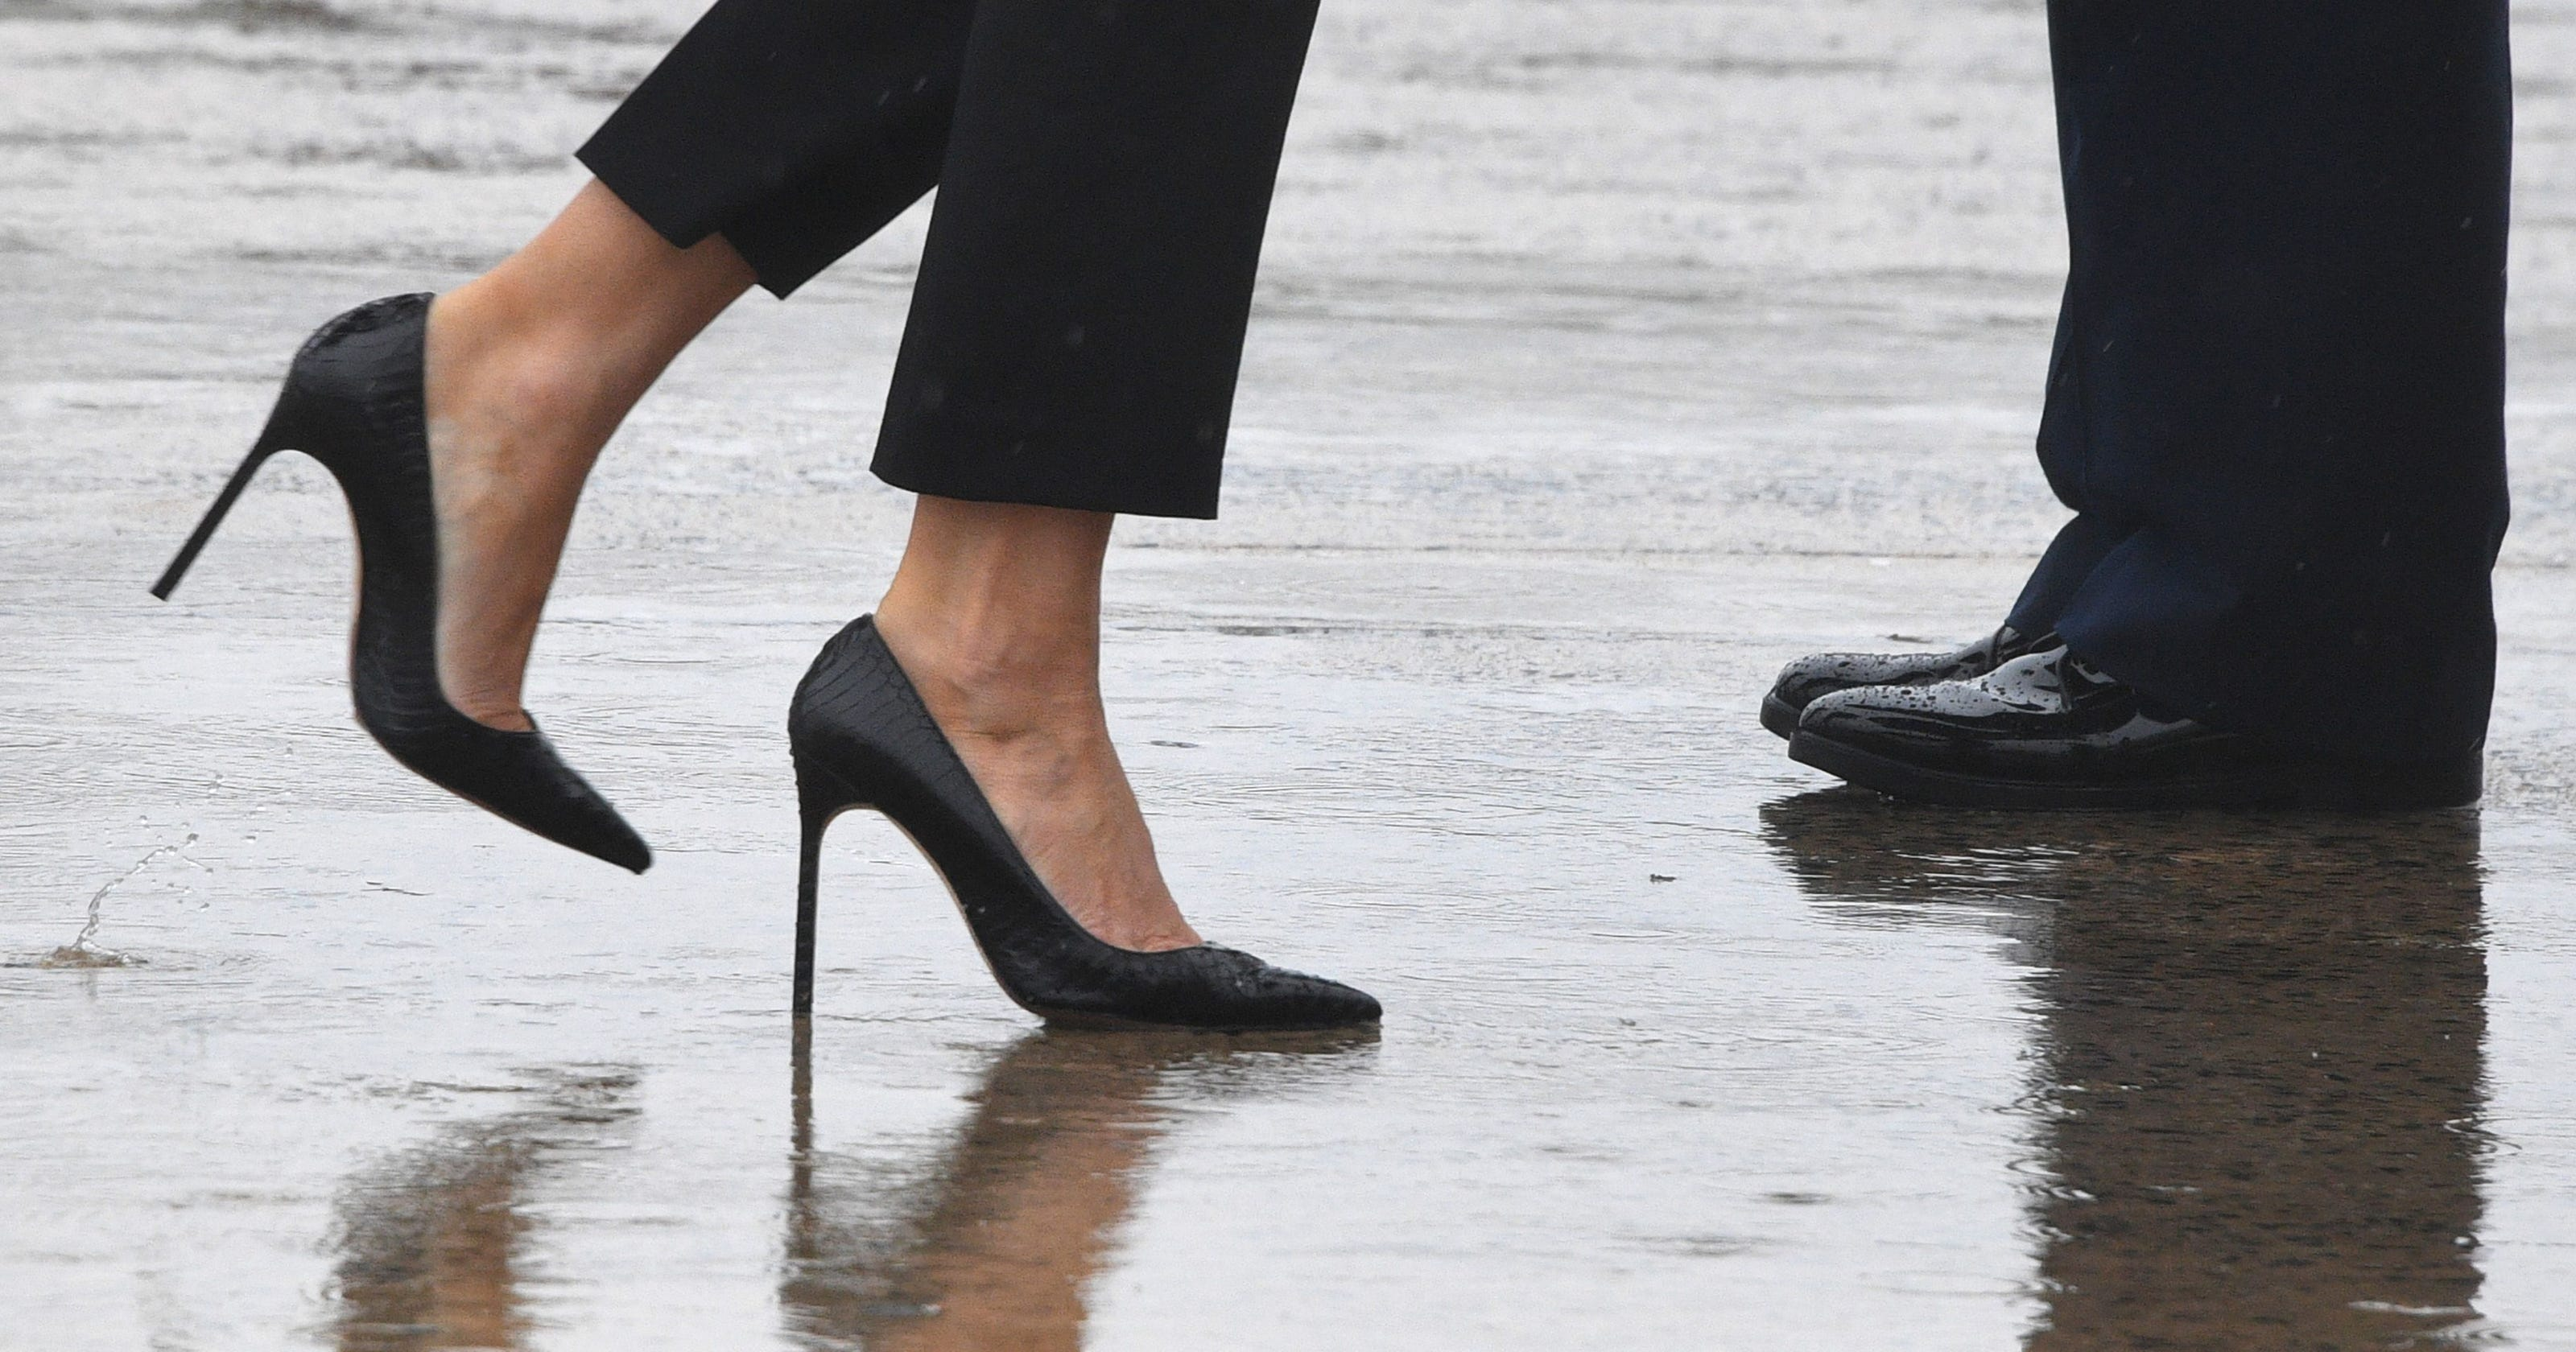 54340912ed Melania Trump swaps stilettos for sneakers and a FLOTUS cap in flooded  Texas.